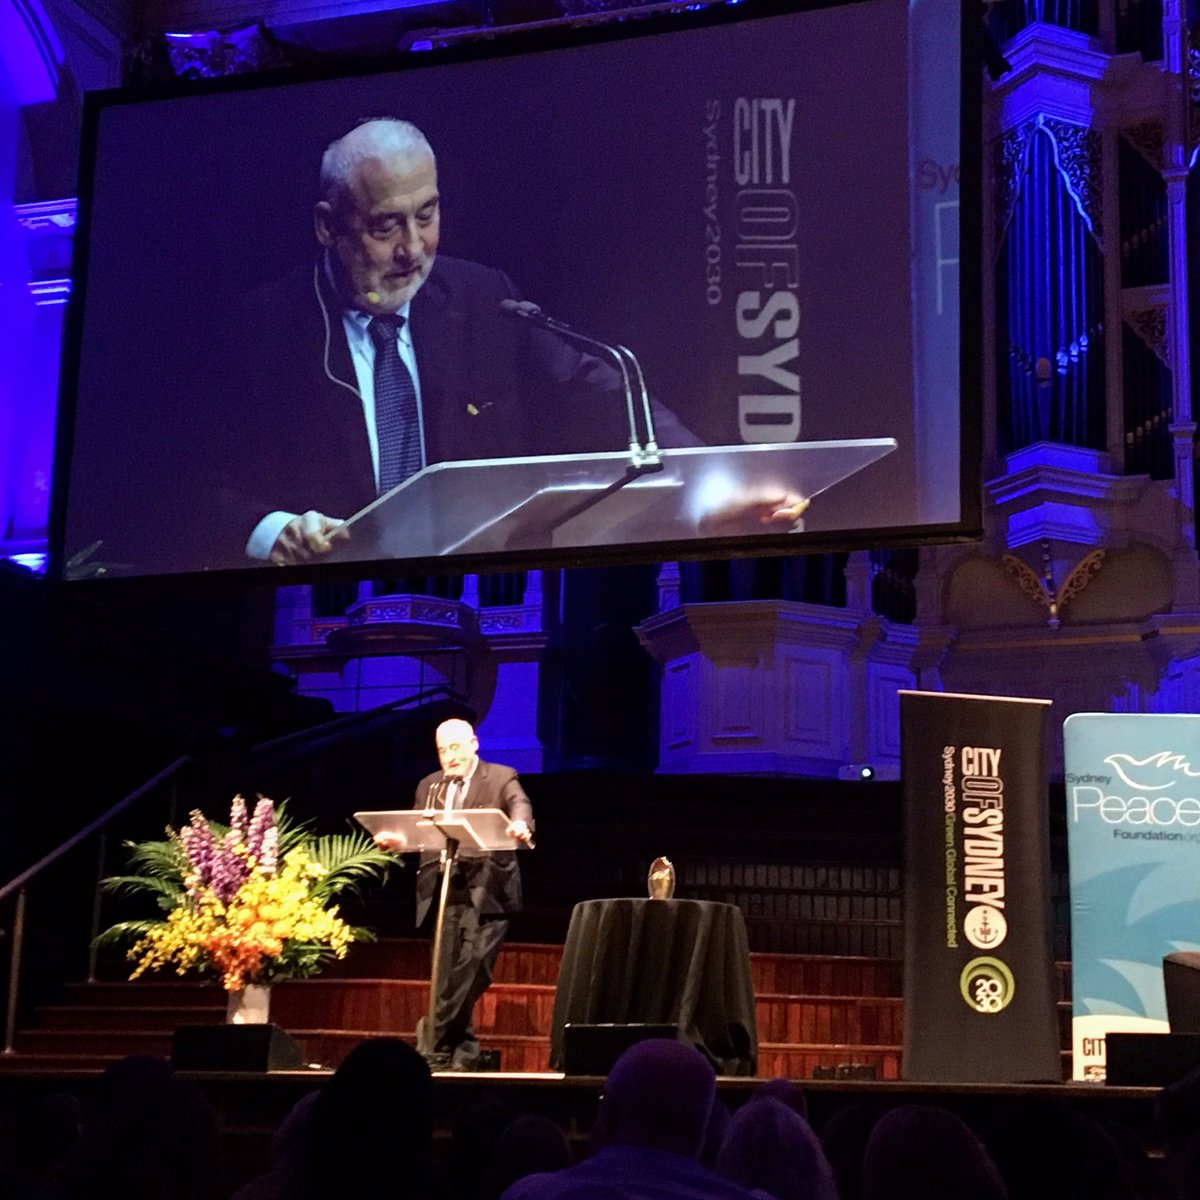 """Some of your politicans may want to copy America. Don't let them."" - Joseph Stiglitz at his #SydneyPeacePrize lecture.  #sydneypeacefoundation<br>http://pic.twitter.com/R6al01oWzi"